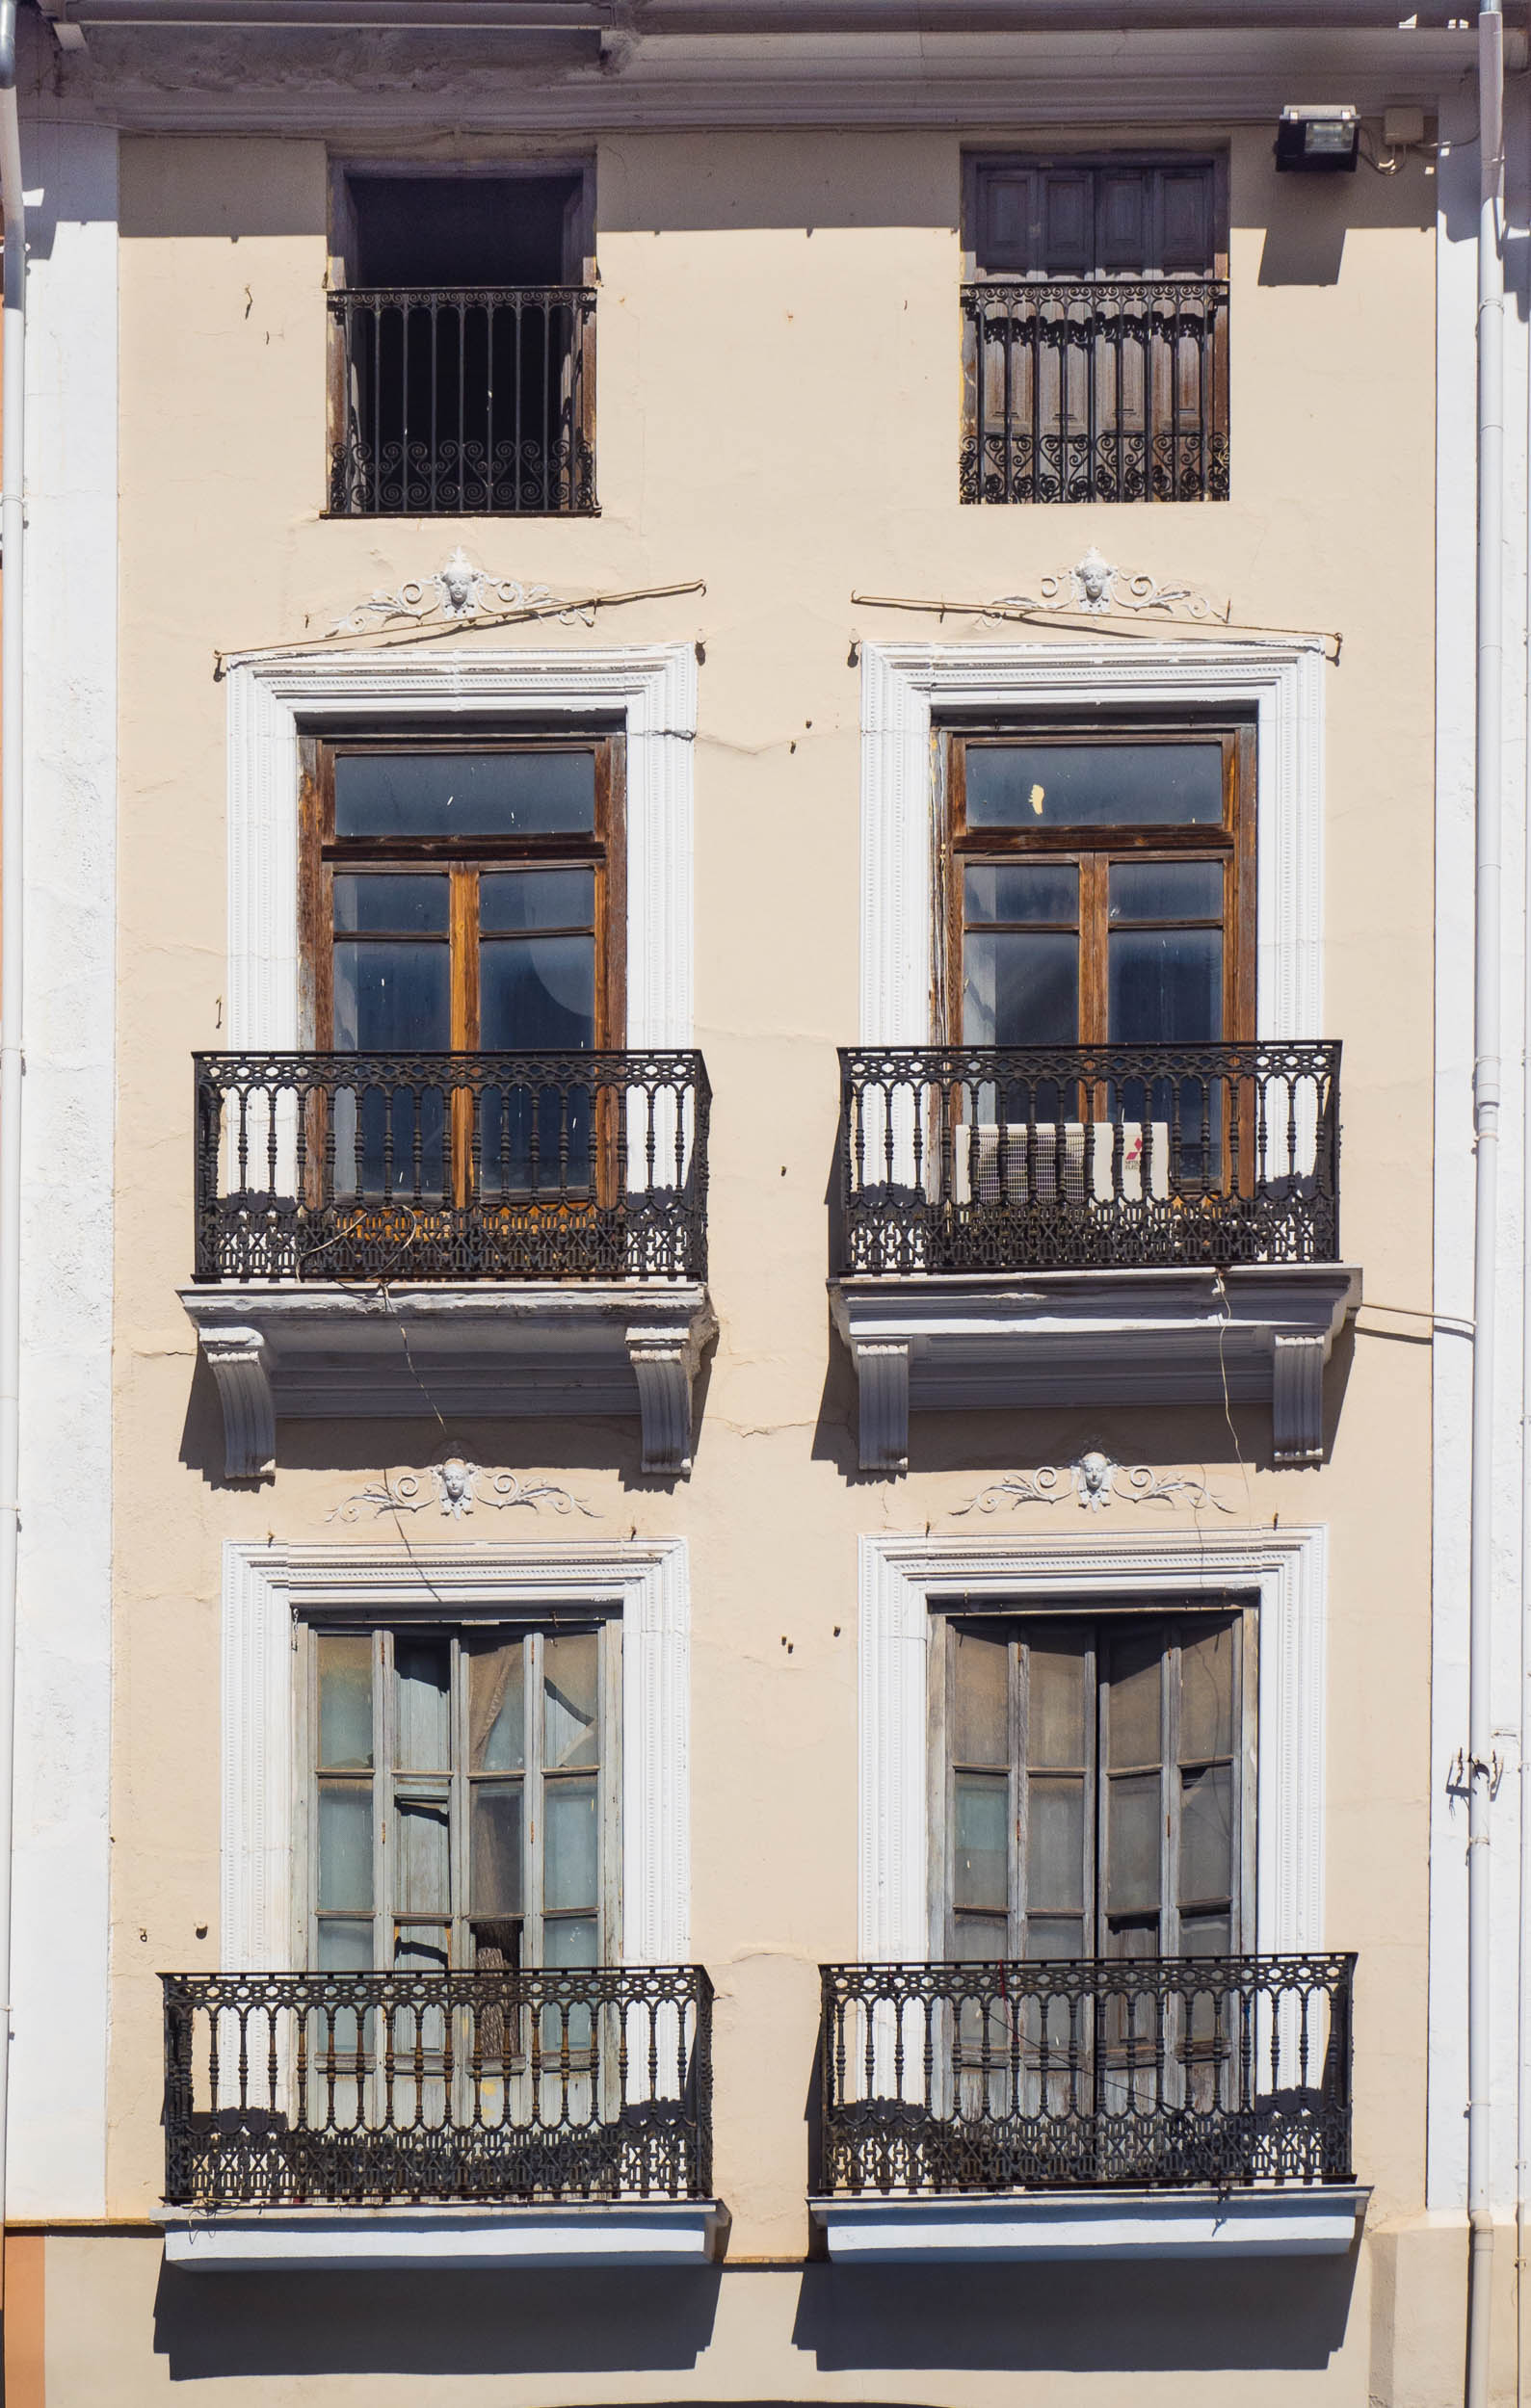 Spanish_windows_Xativa_yellow-3160097.jpg